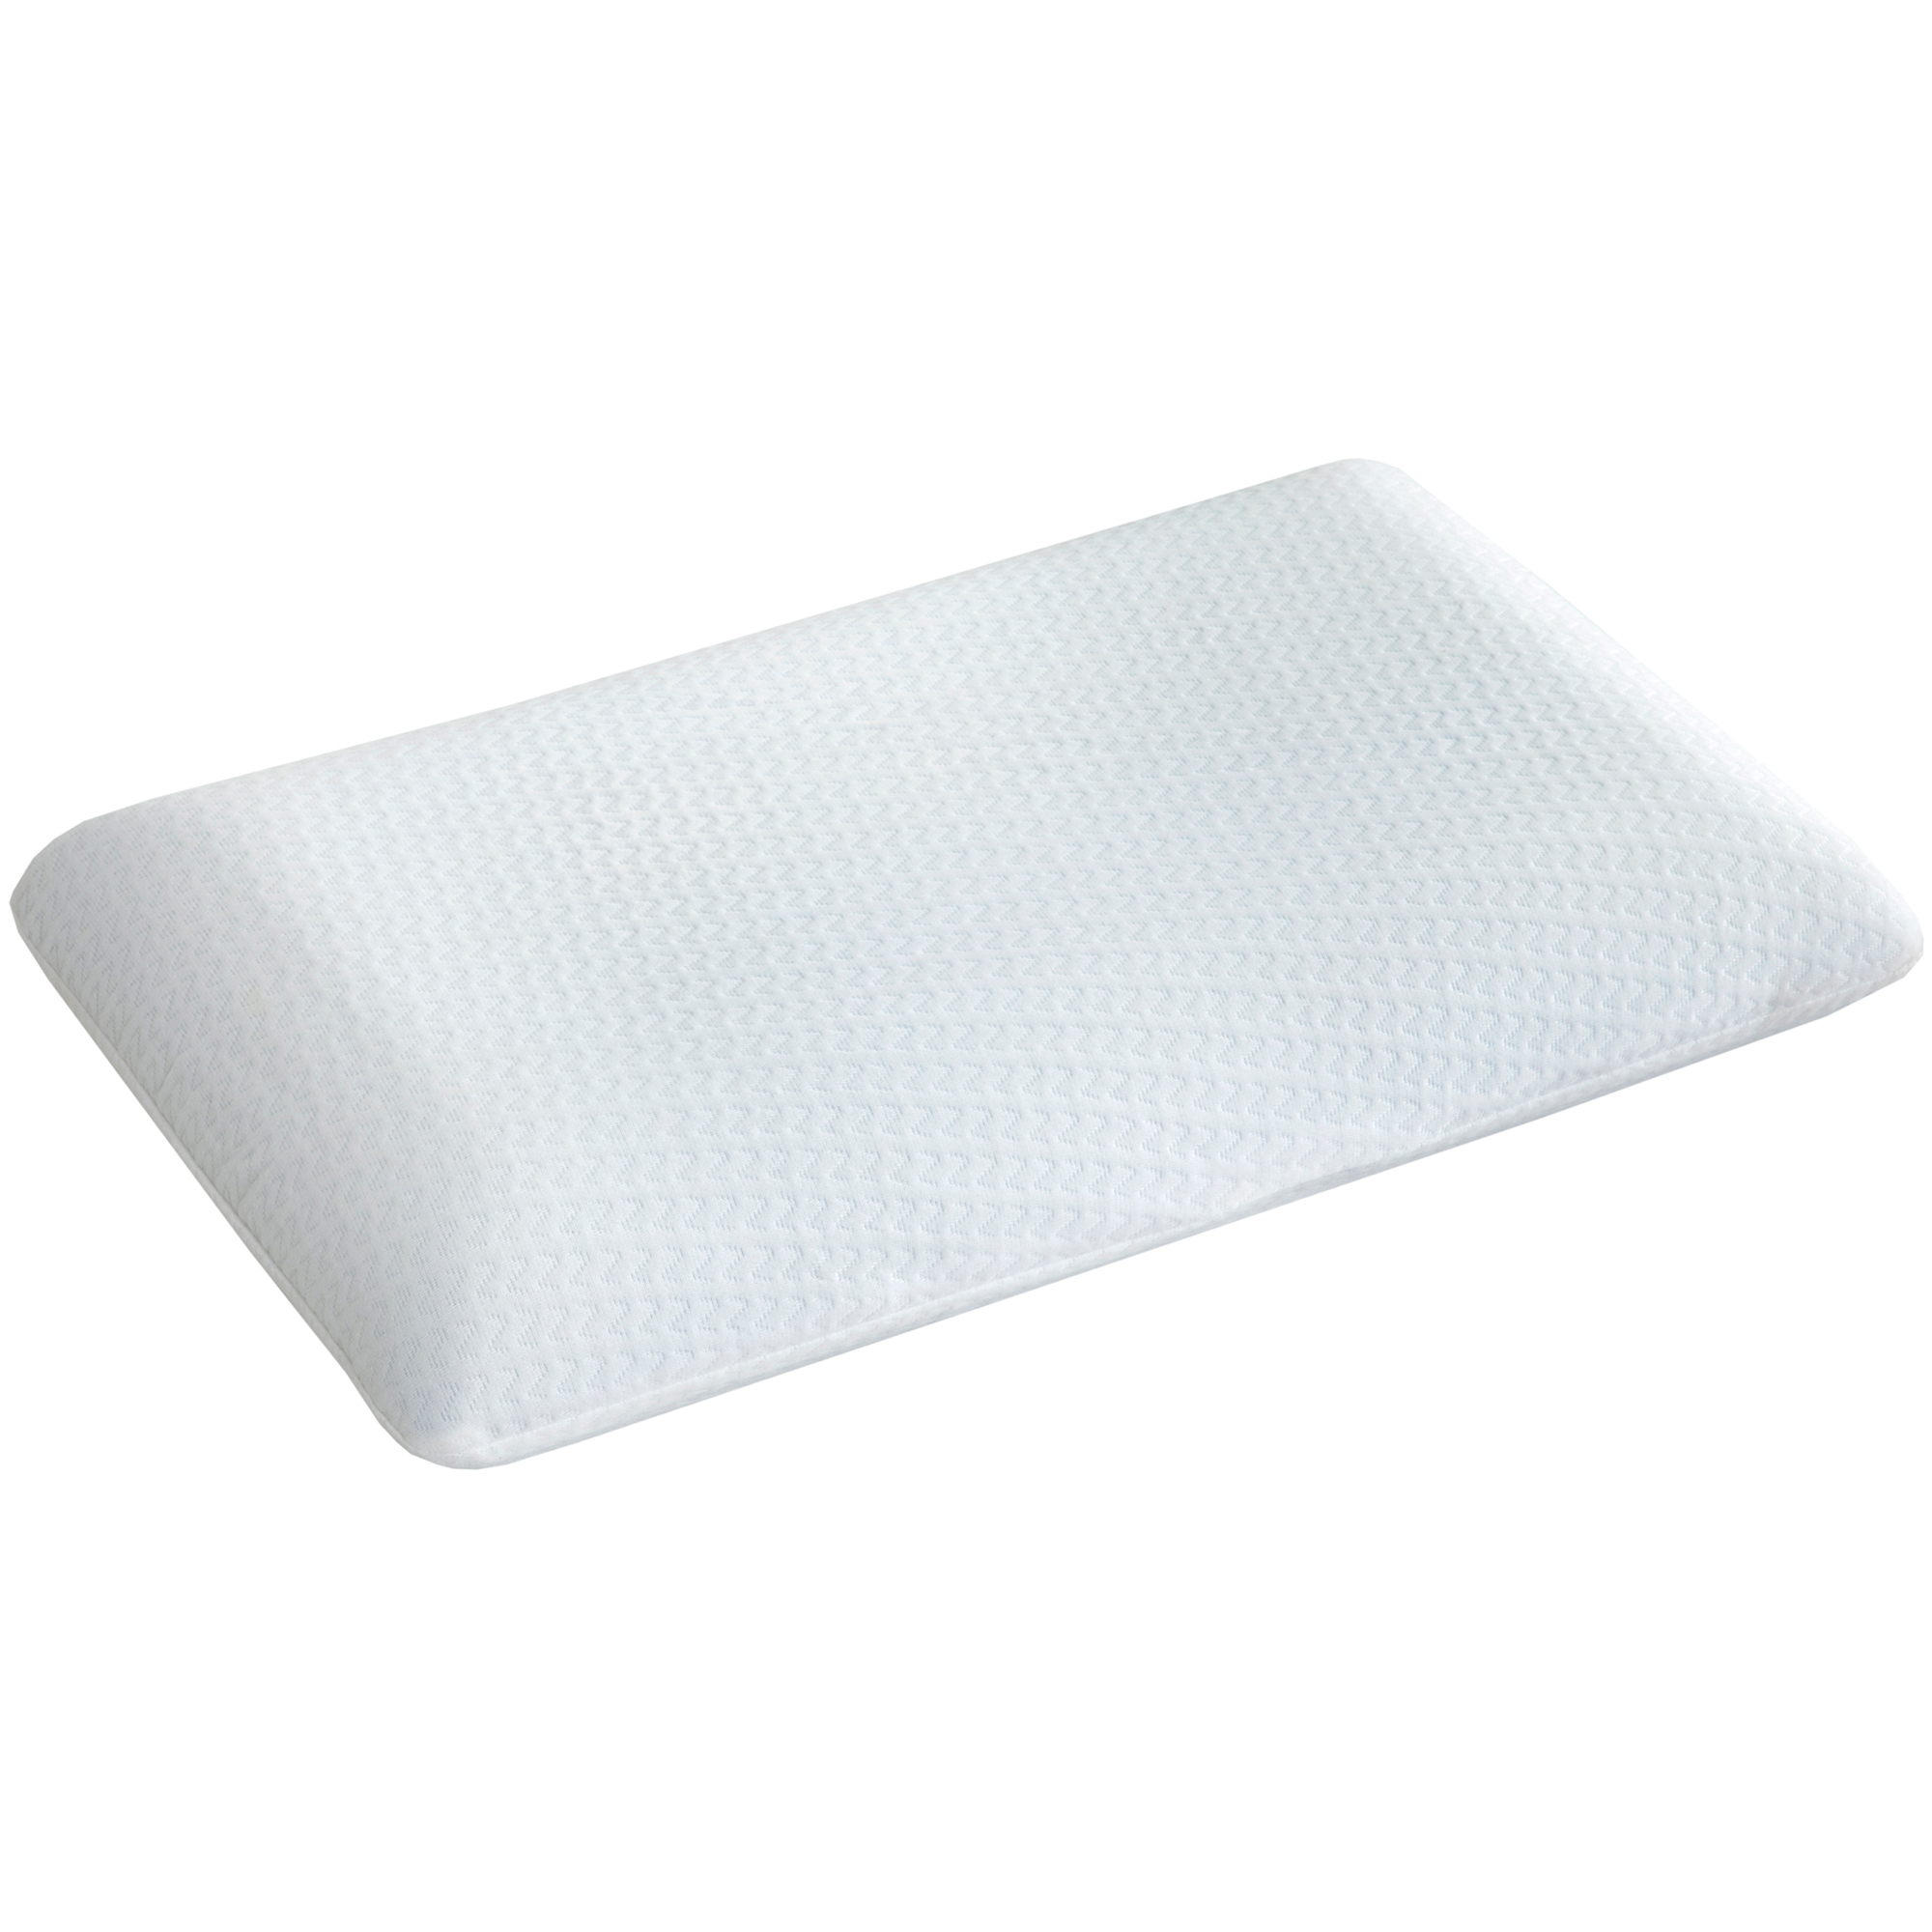 Gel Infused Memory Foam Pillow Gel Infused Memory Foam Pillow